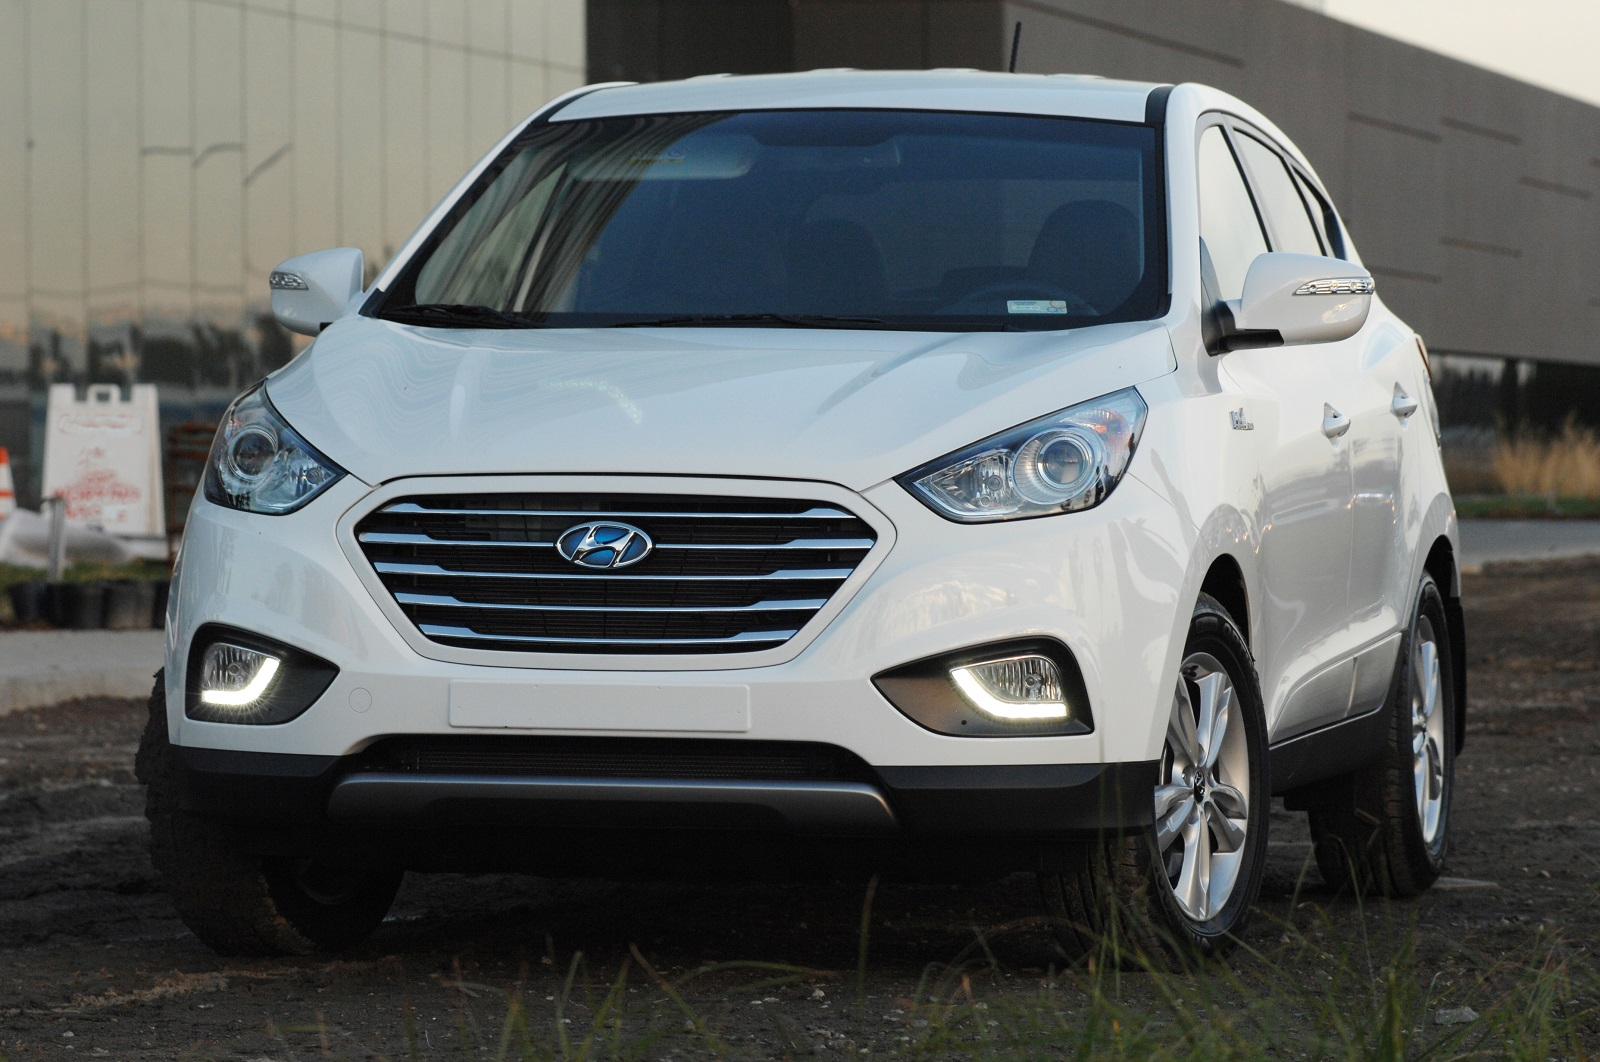 2015 Hyundai Tucson Fuel Cell Hydrogen Crossover First Drive